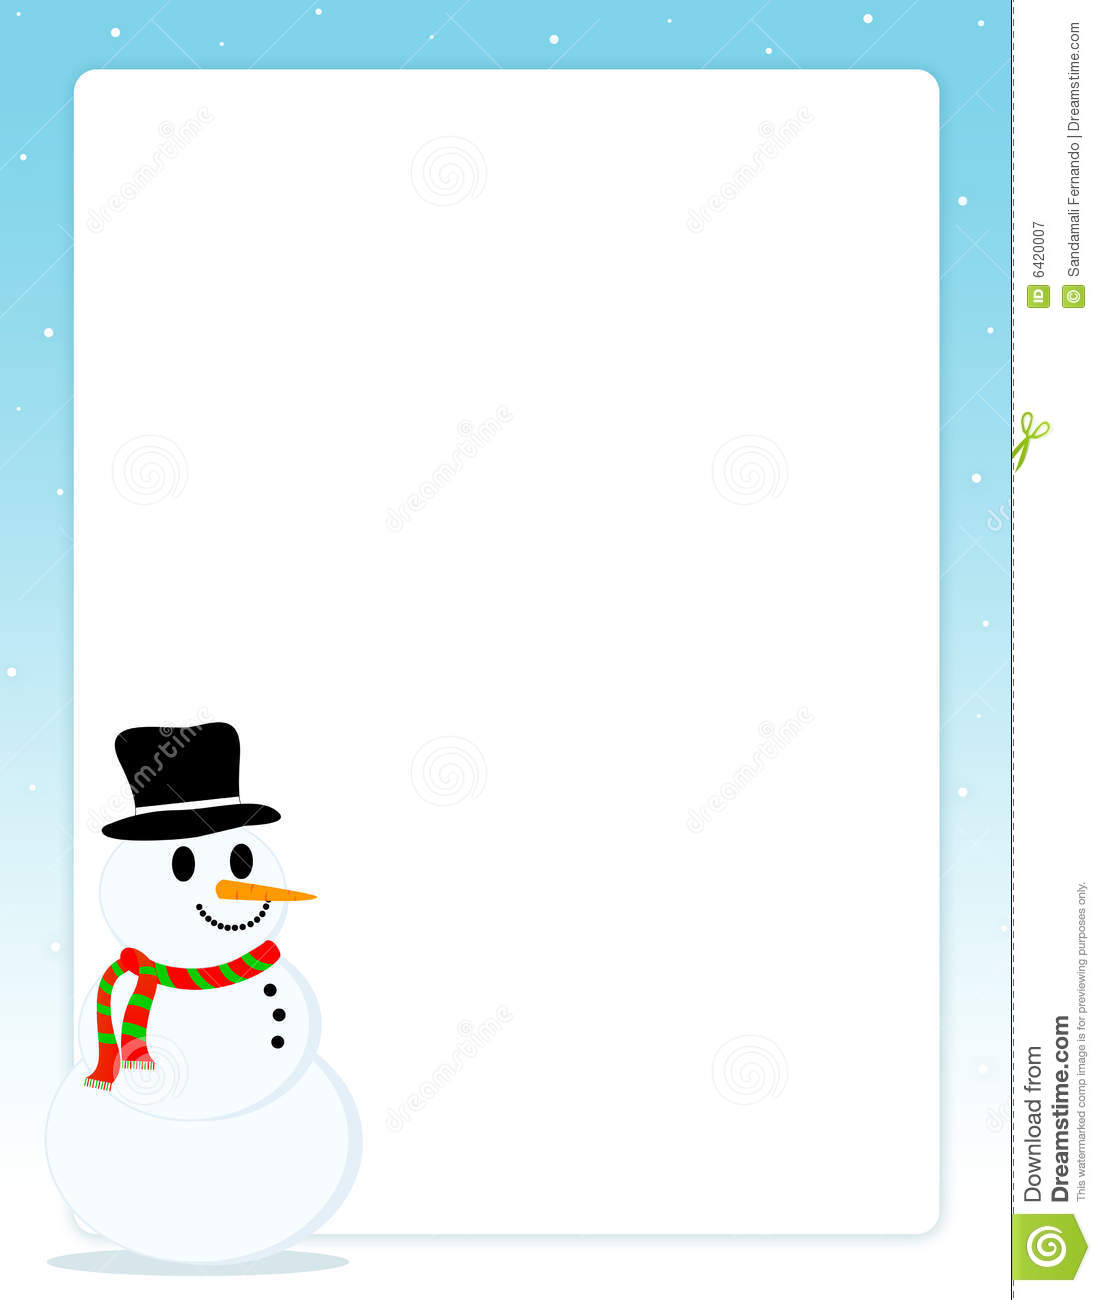 Christmas Border Free Christmas Border With Snowman